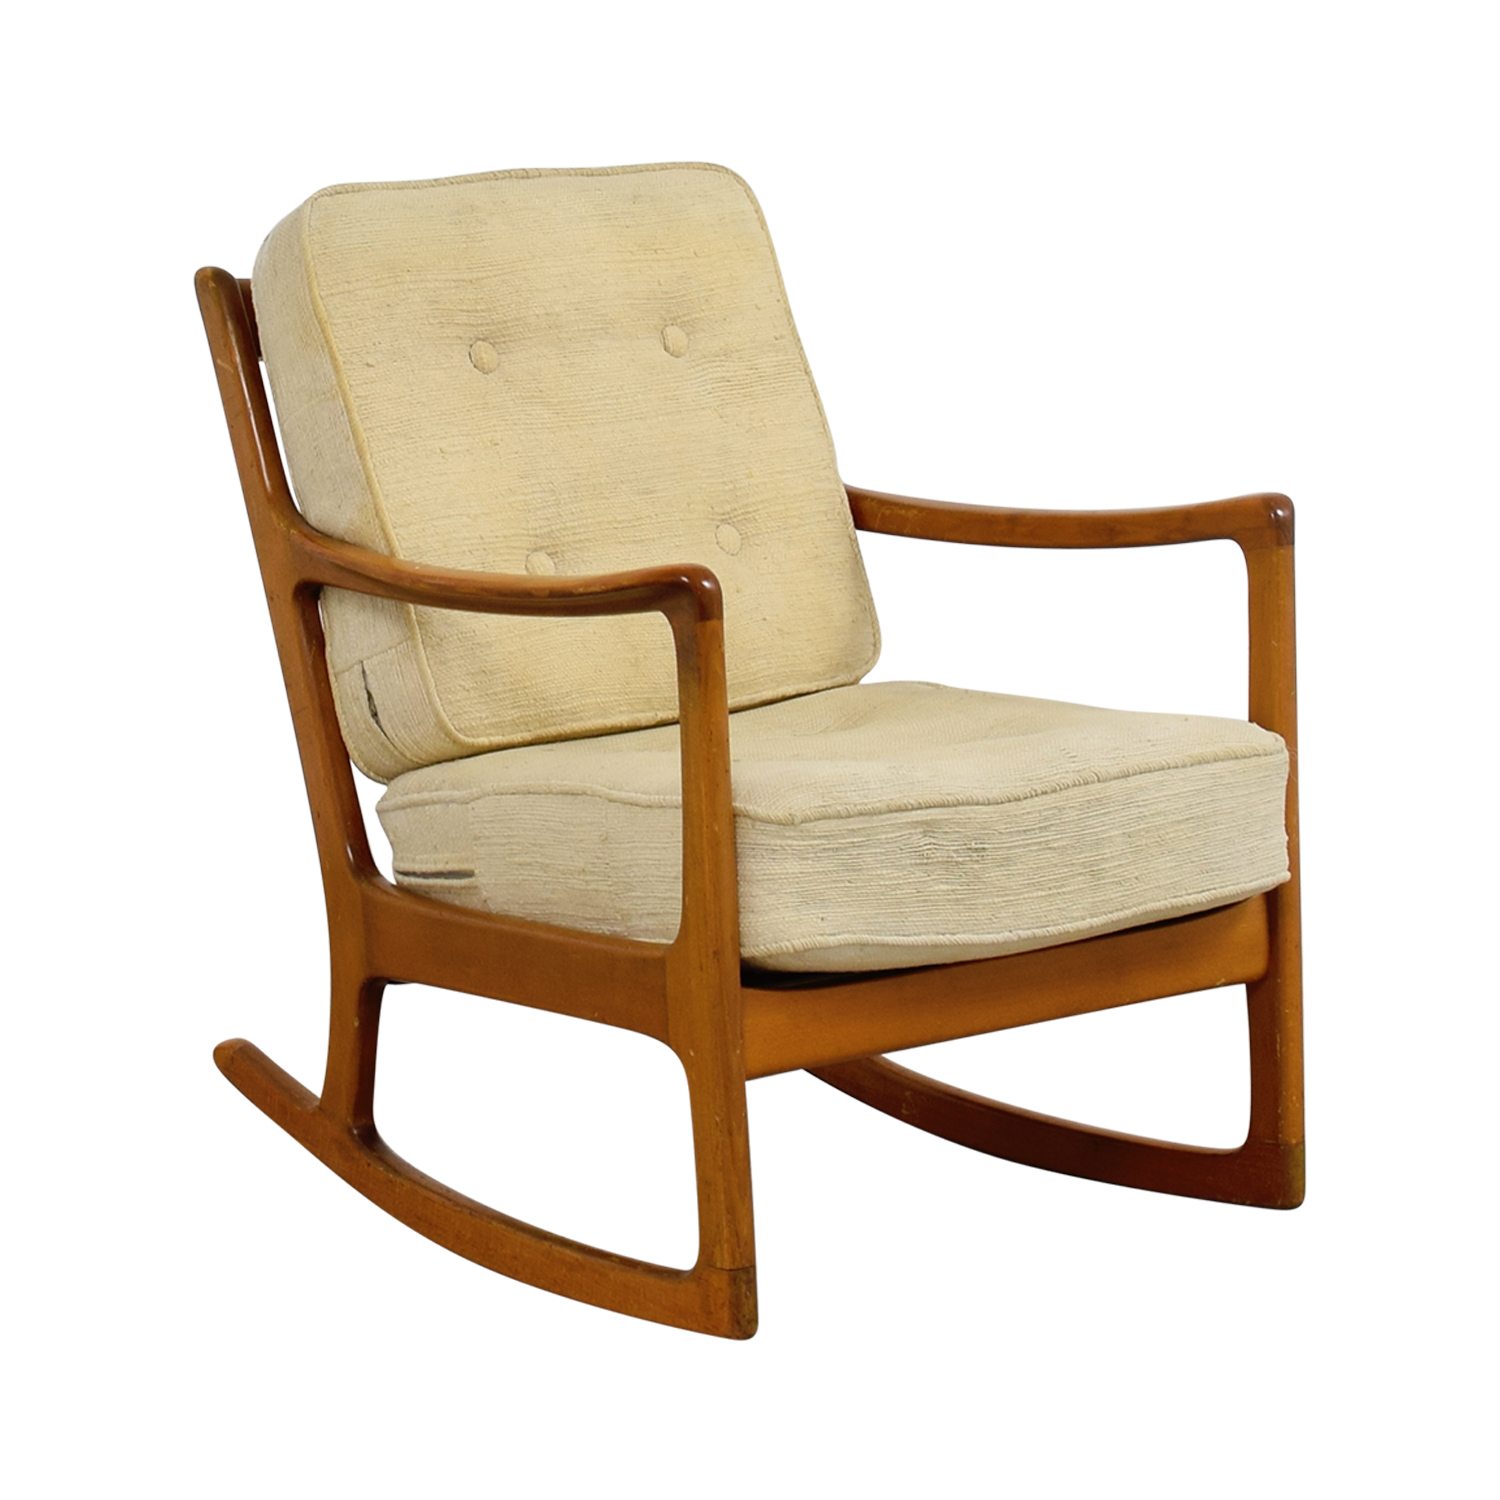 ... John Stuart Inc Mid Century Danish Beige Teak Rocking Chair / Chairs ...